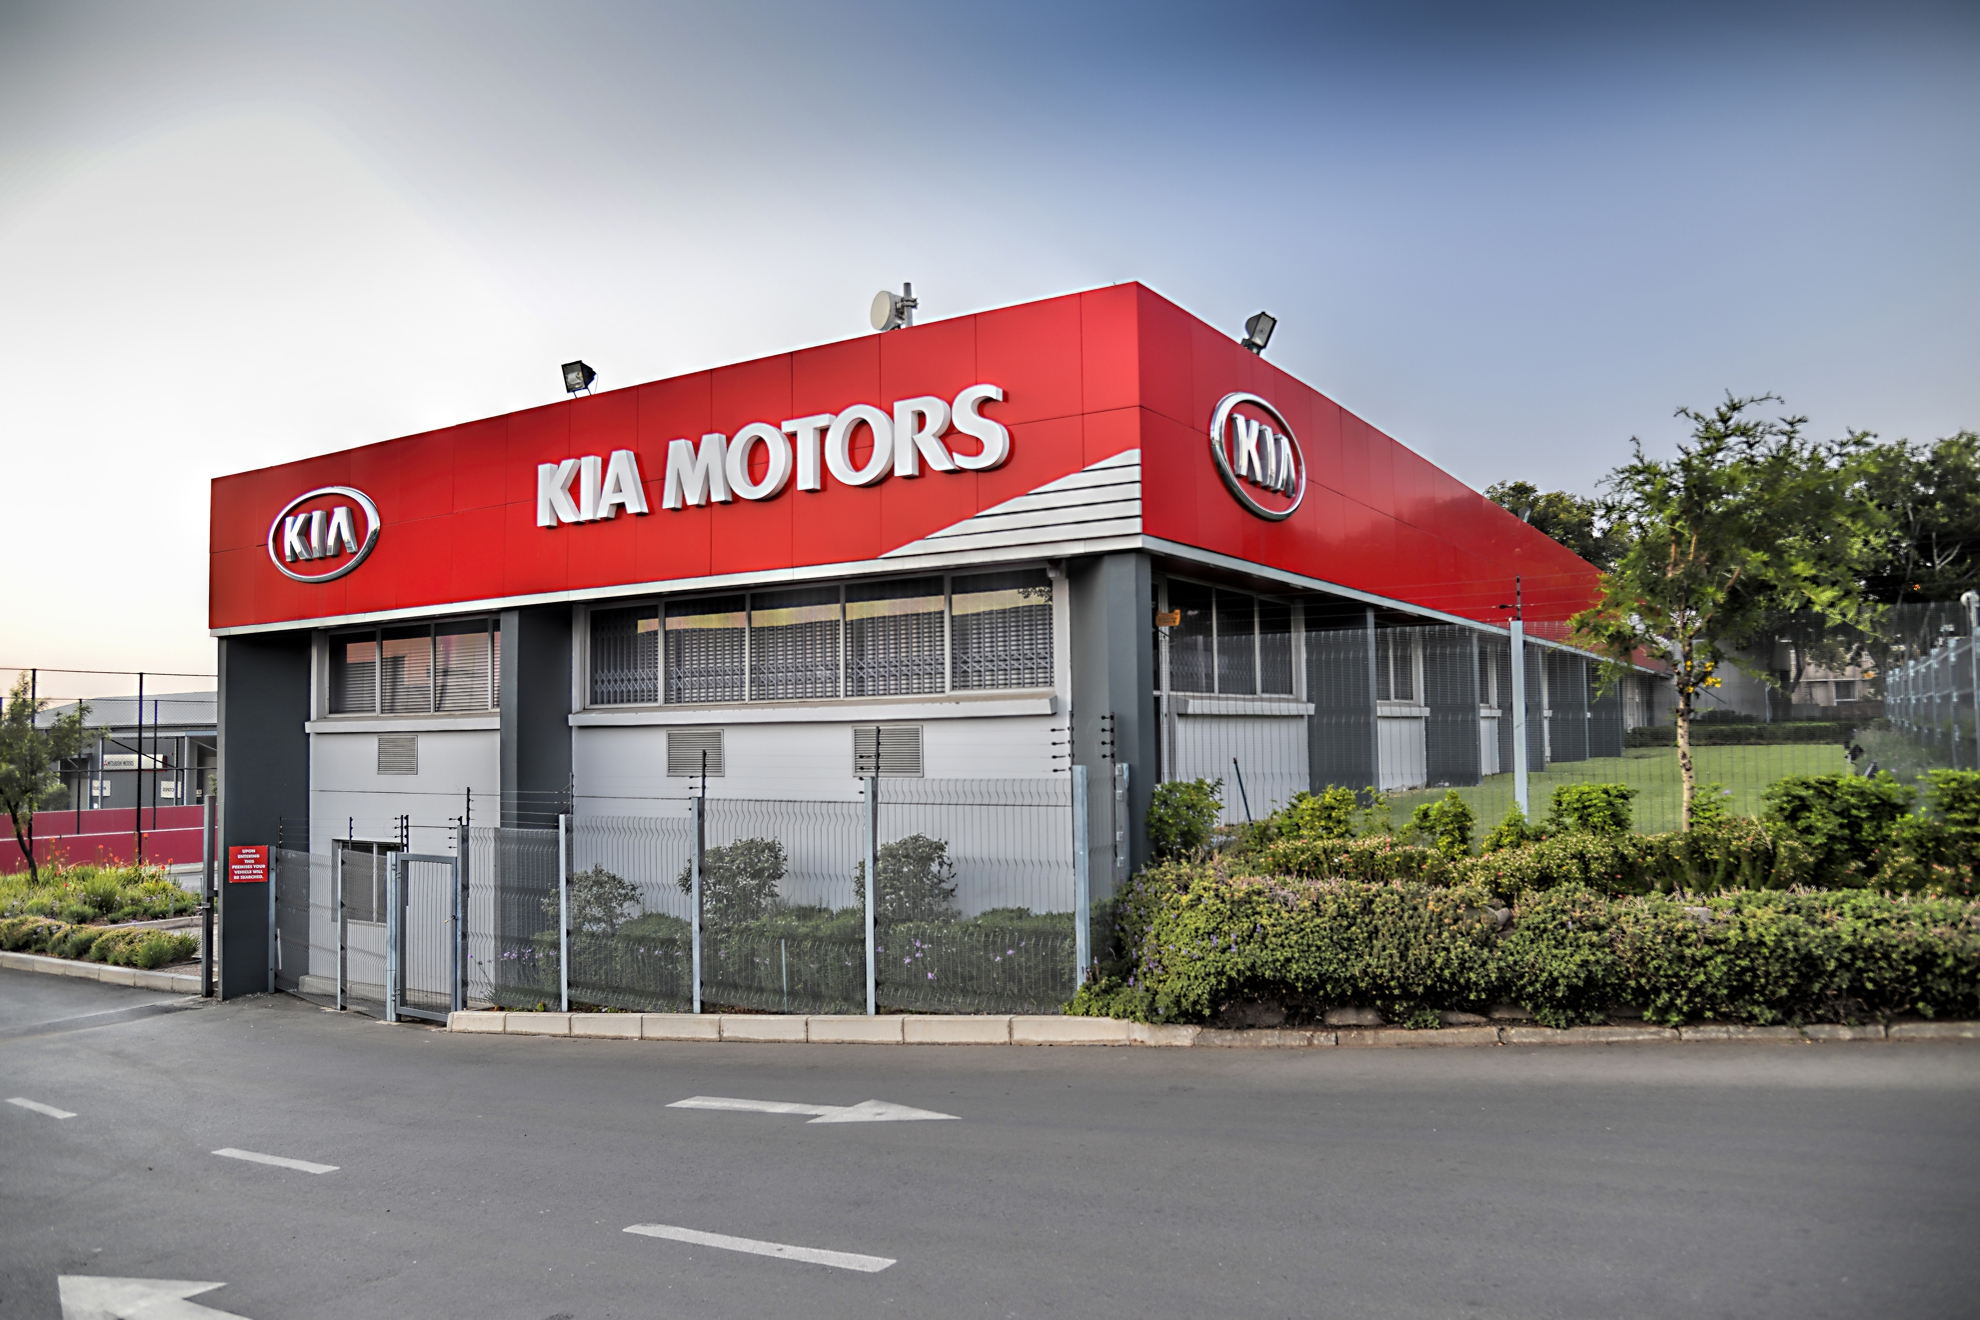 KIA Motors South Africa